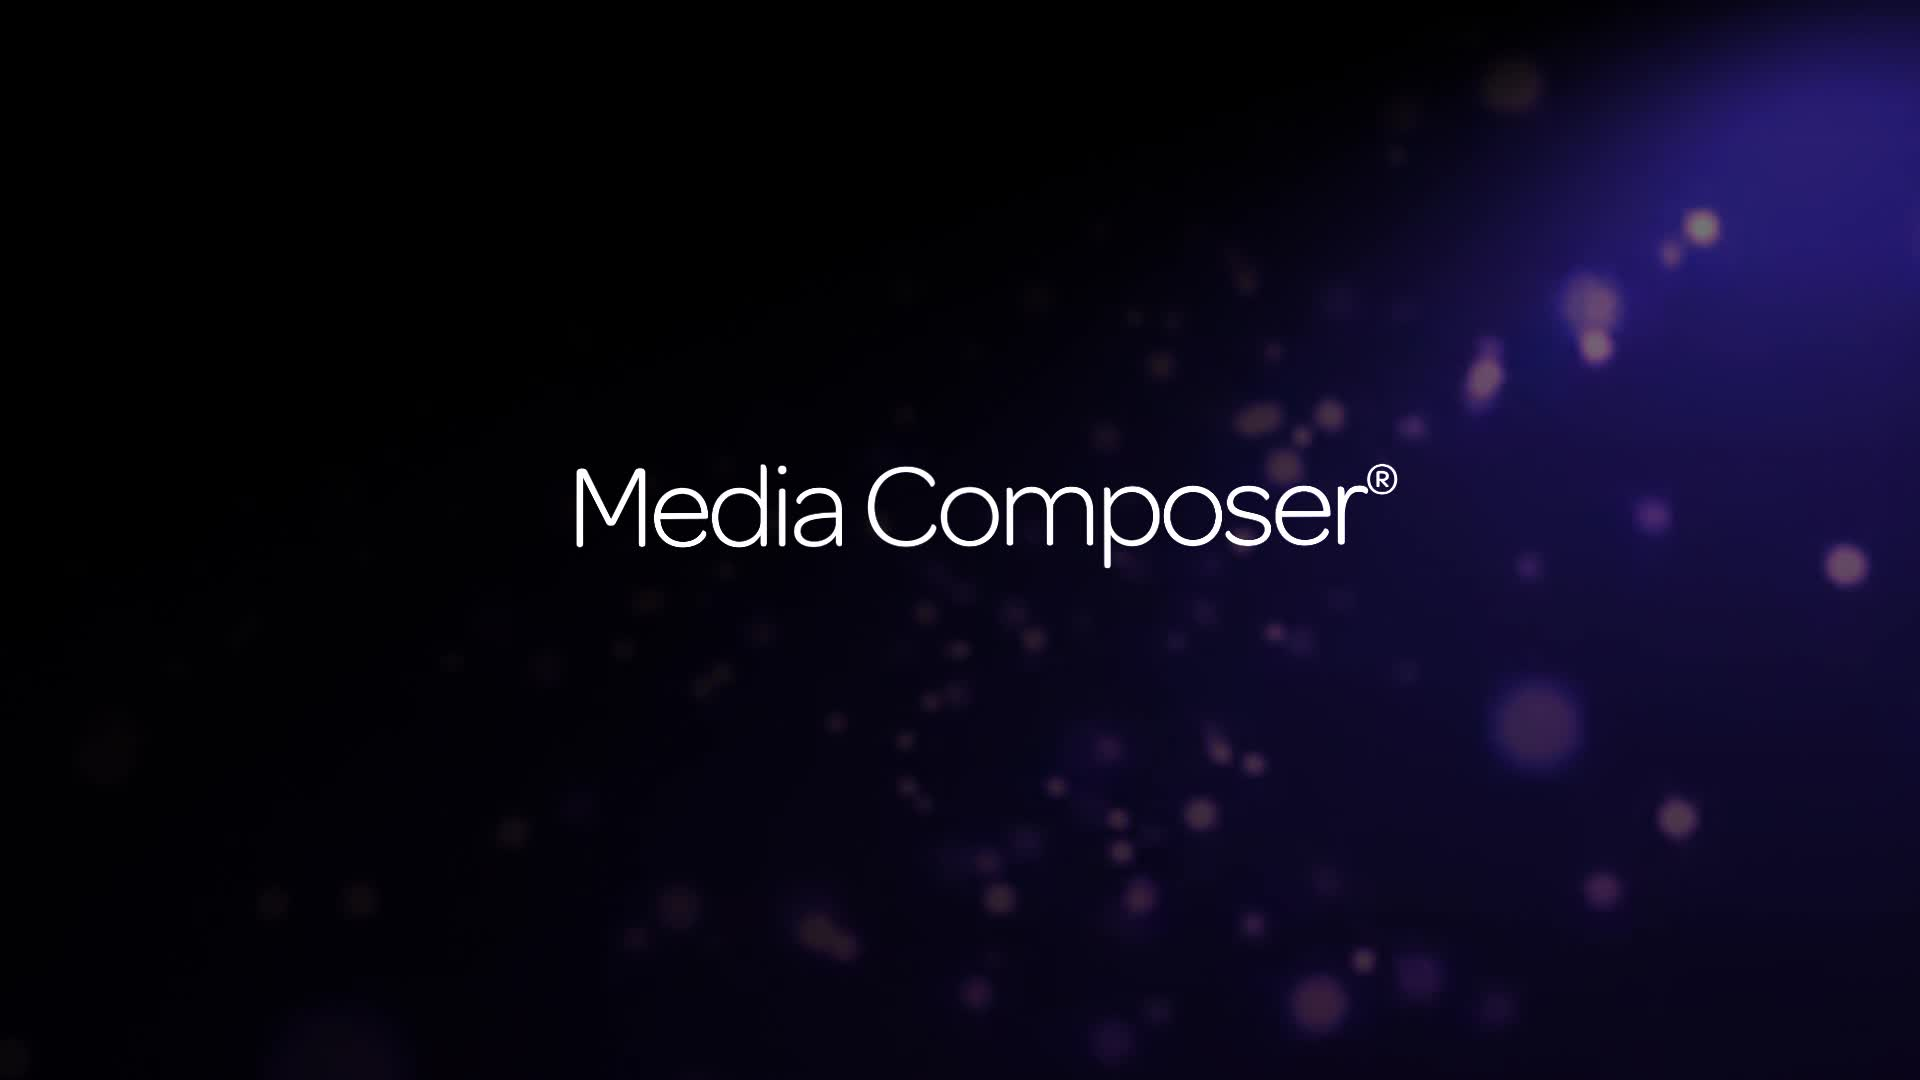 Media Composer version introduction